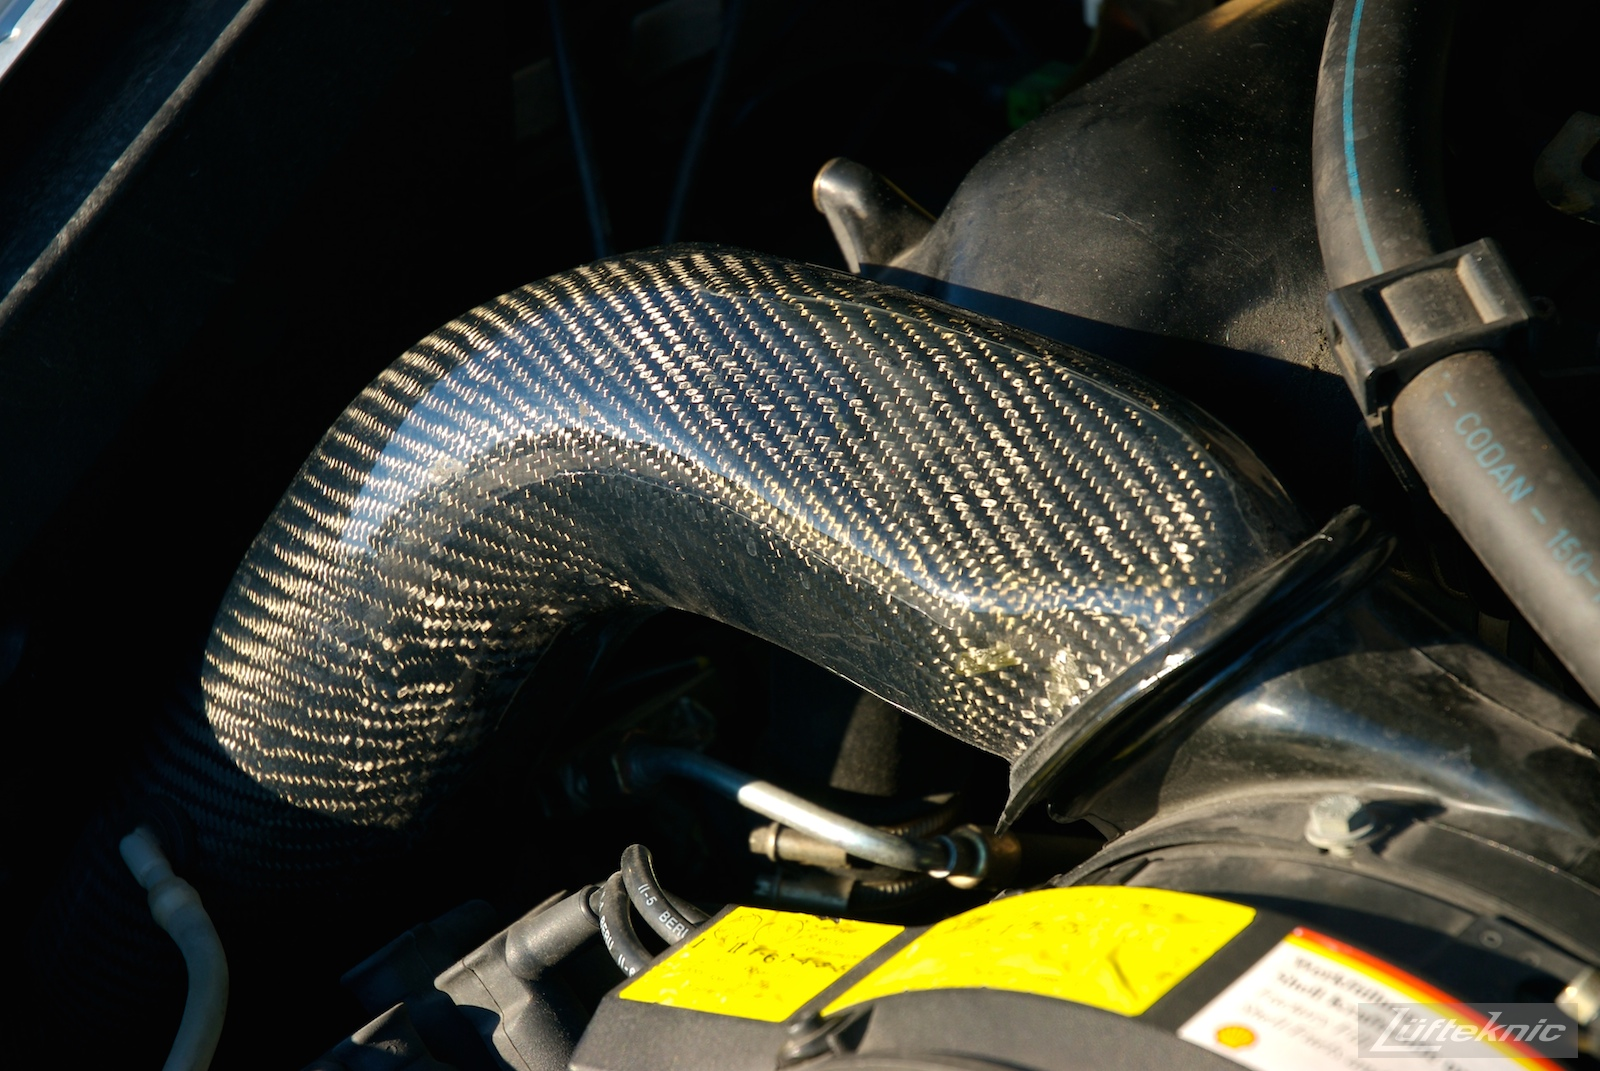 Carbon fiber engine heater pipe shown on the RS America.